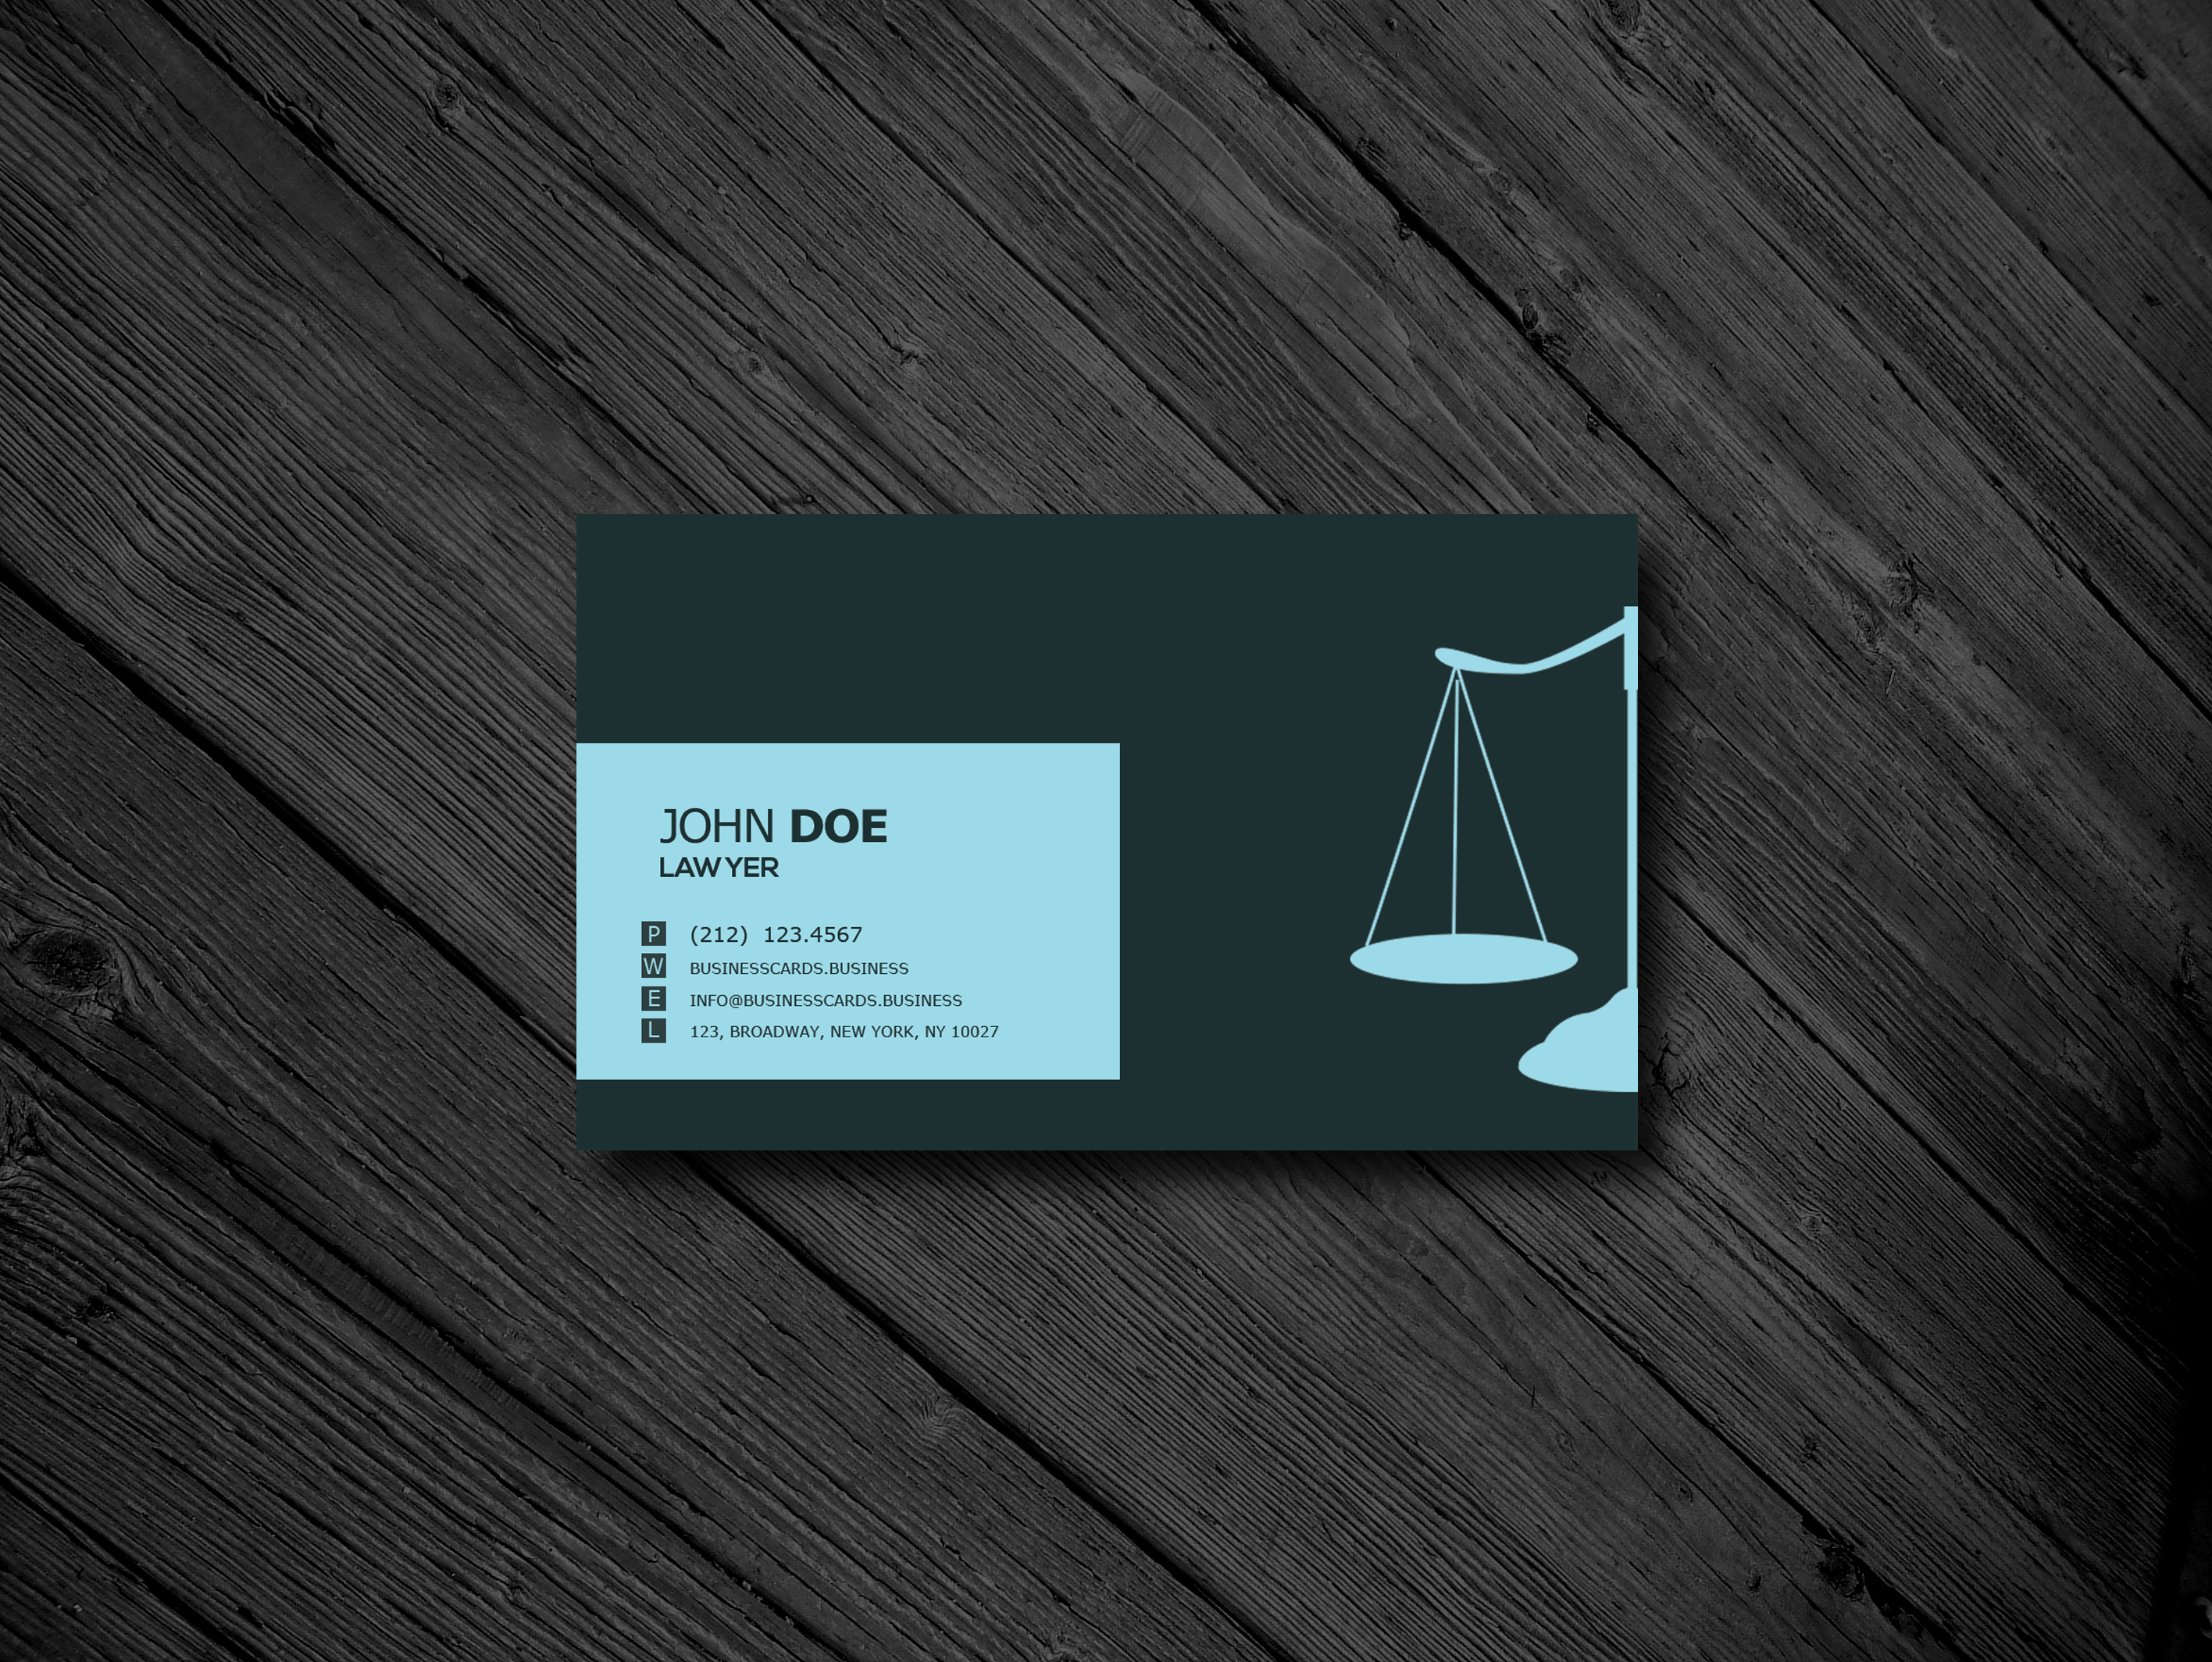 Free business card templates business cards templates free lawyer business card psd template flashek Choice Image